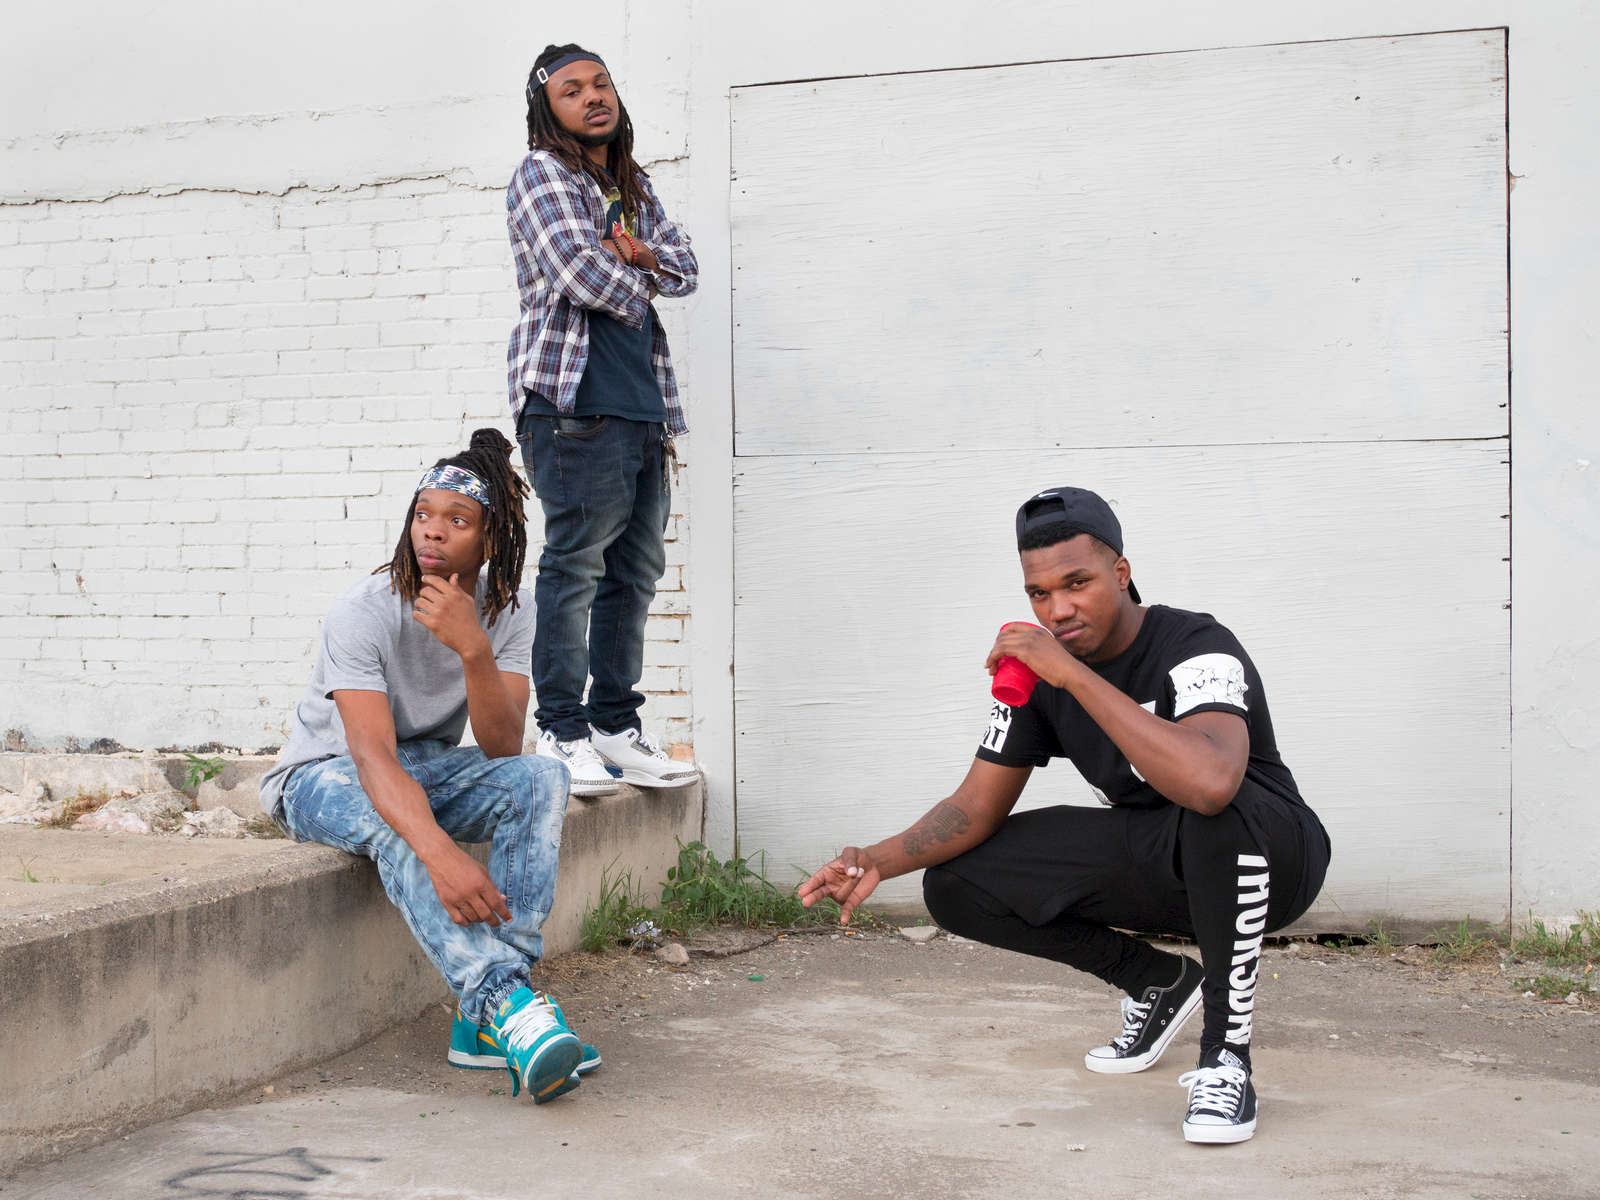 The Yung Stonerz, a musically inclined collective from Louisiana, pose for a photograph before a gig in Deep Ellum, a neighborhood composed largely of arts and entertainment venues near downtown in Old East Dallas.Dallas is a major city in Texas and is the largest urban center of the fourth most populous metropolitan area in the United States. The city ranks ninth in the U.S. and third in Texas after Houston and San Antonio. The city's prominence arose from its historical importance as a center for the oil and cotton industries, and its position along numerous railroad lines.For two weeks in the summer of 2015, photographer Peter Dench visited Dallas to document the metroplex in his epic reportage, DENCH DOES DALLAS.Photographed using an Olympus E-M5 Mark II©Peter Dench/Getty Images Reportage